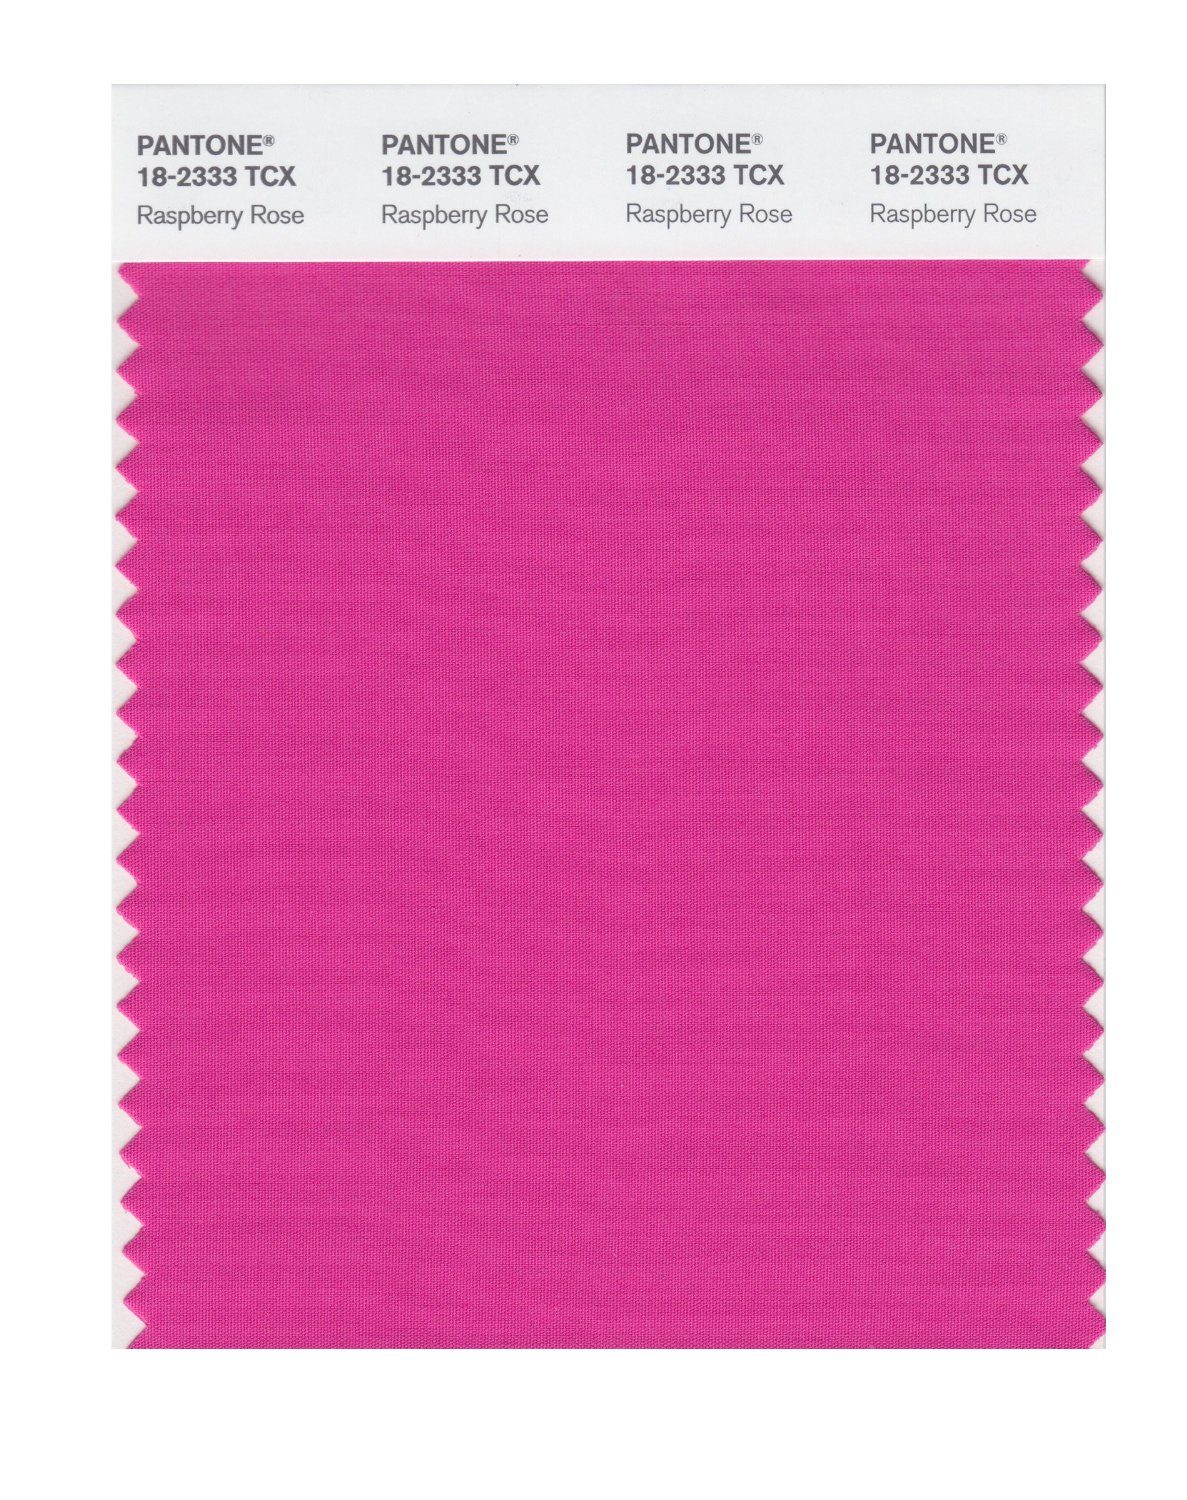 Pantone Smart Swatch 18-2333 Raspberry Rose